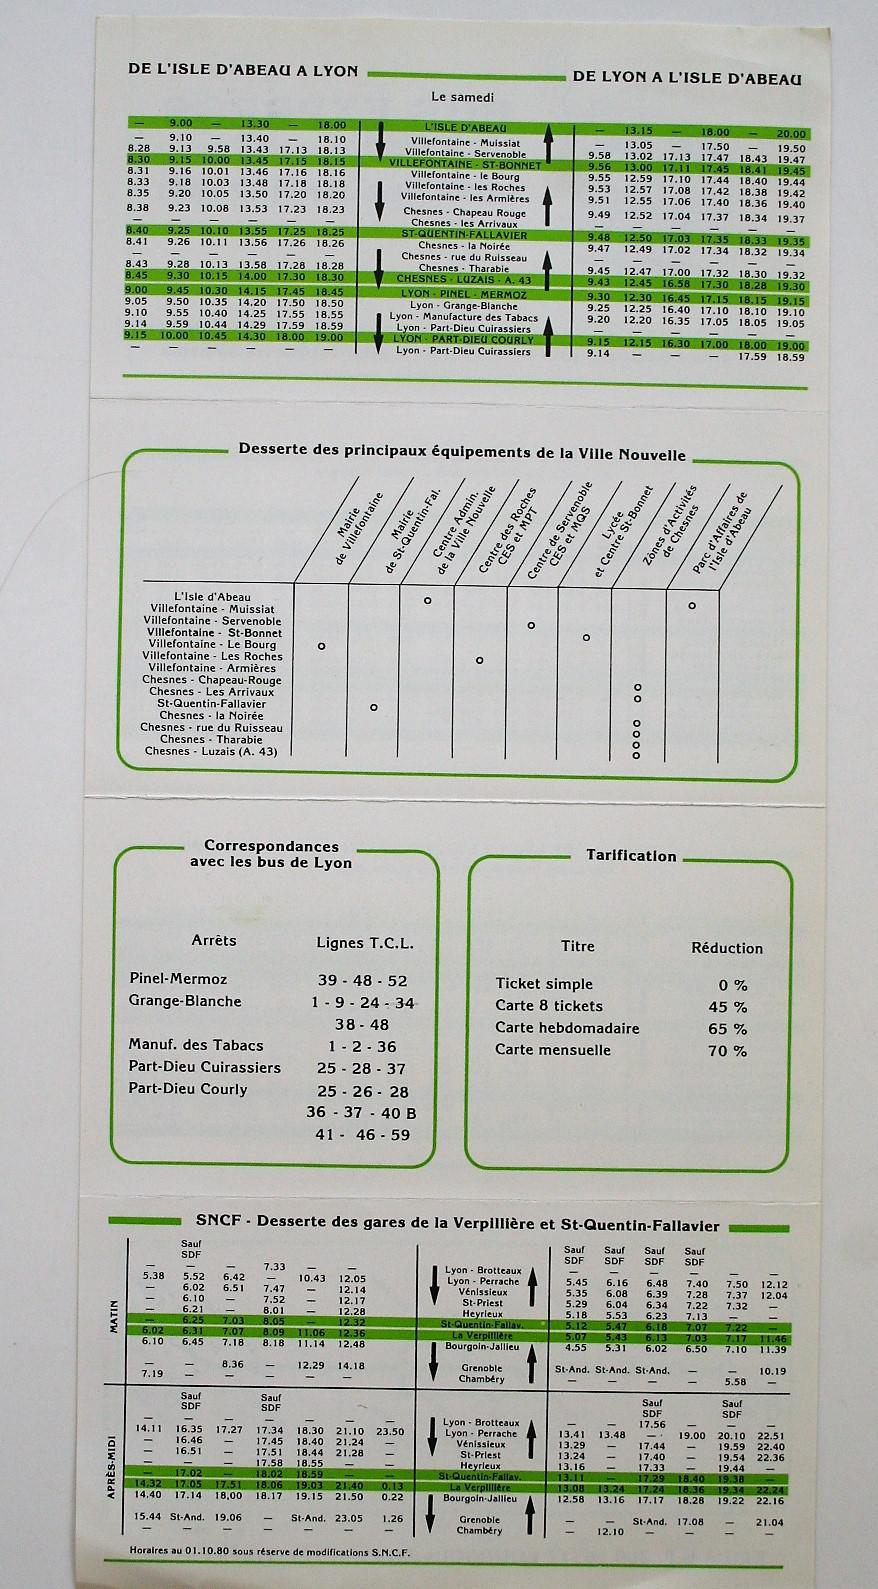 1981 timetable continued